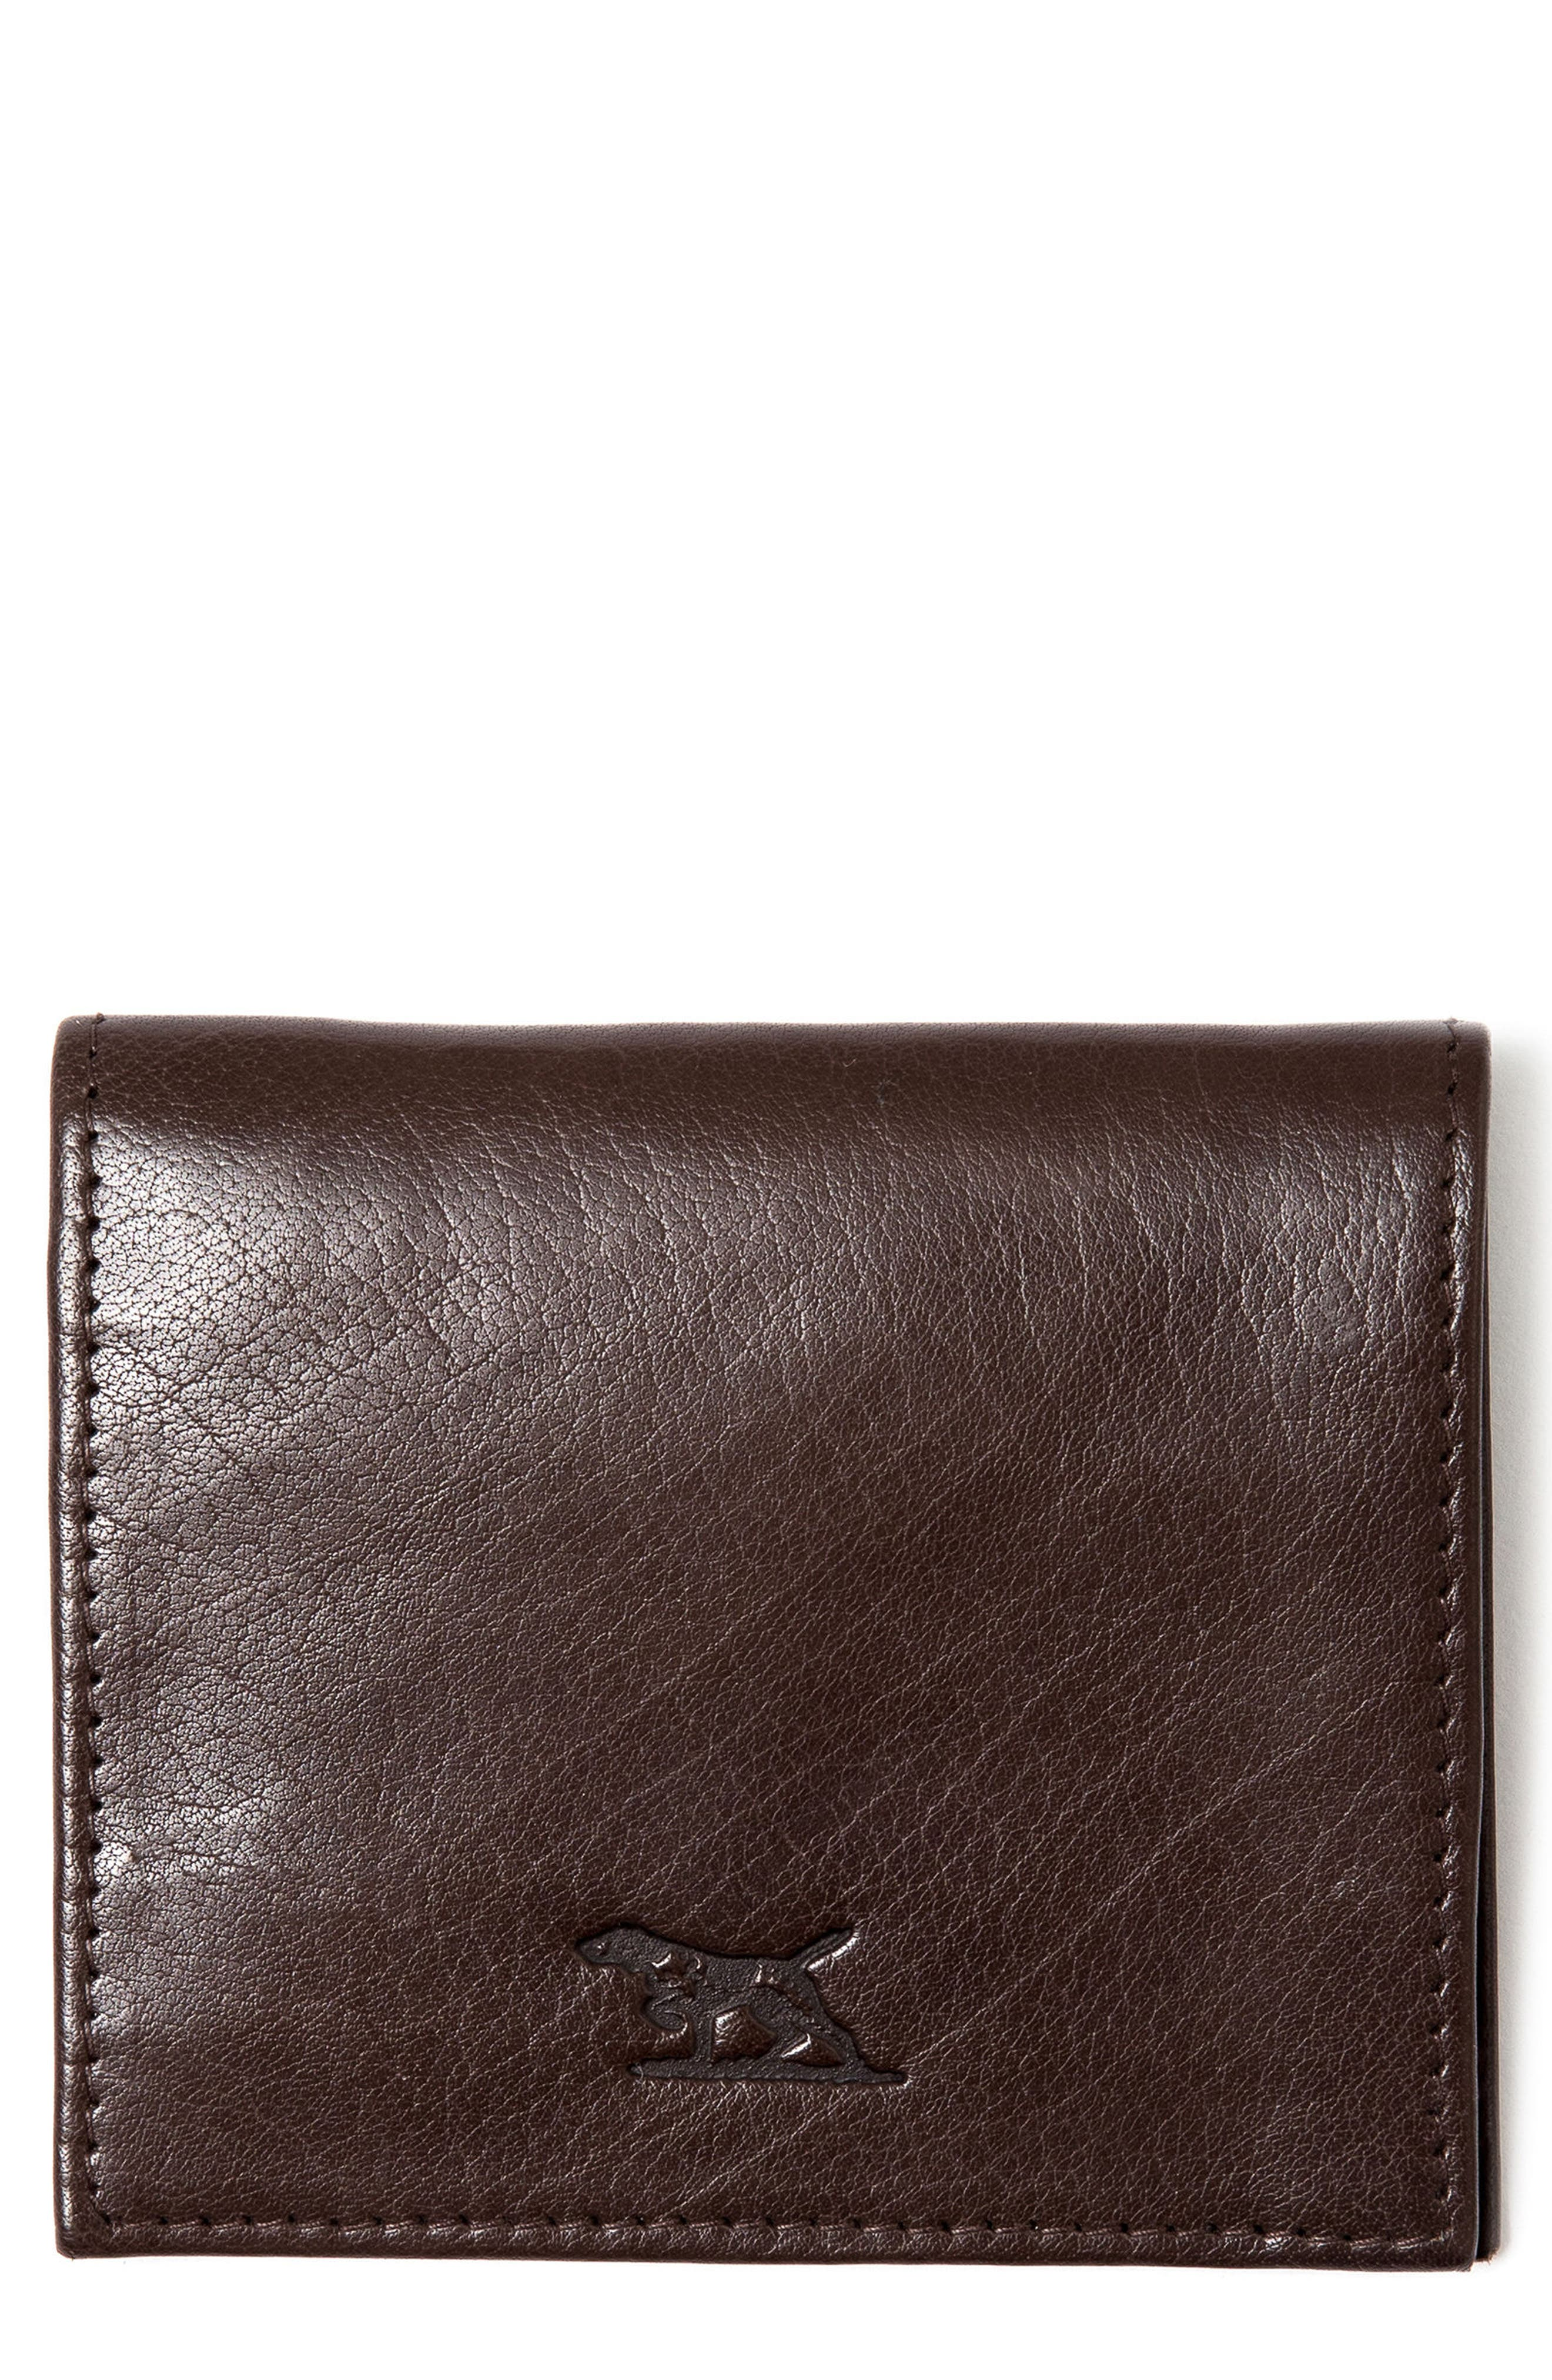 Four Mile Bay Leather Wallet,                         Main,                         color, 247